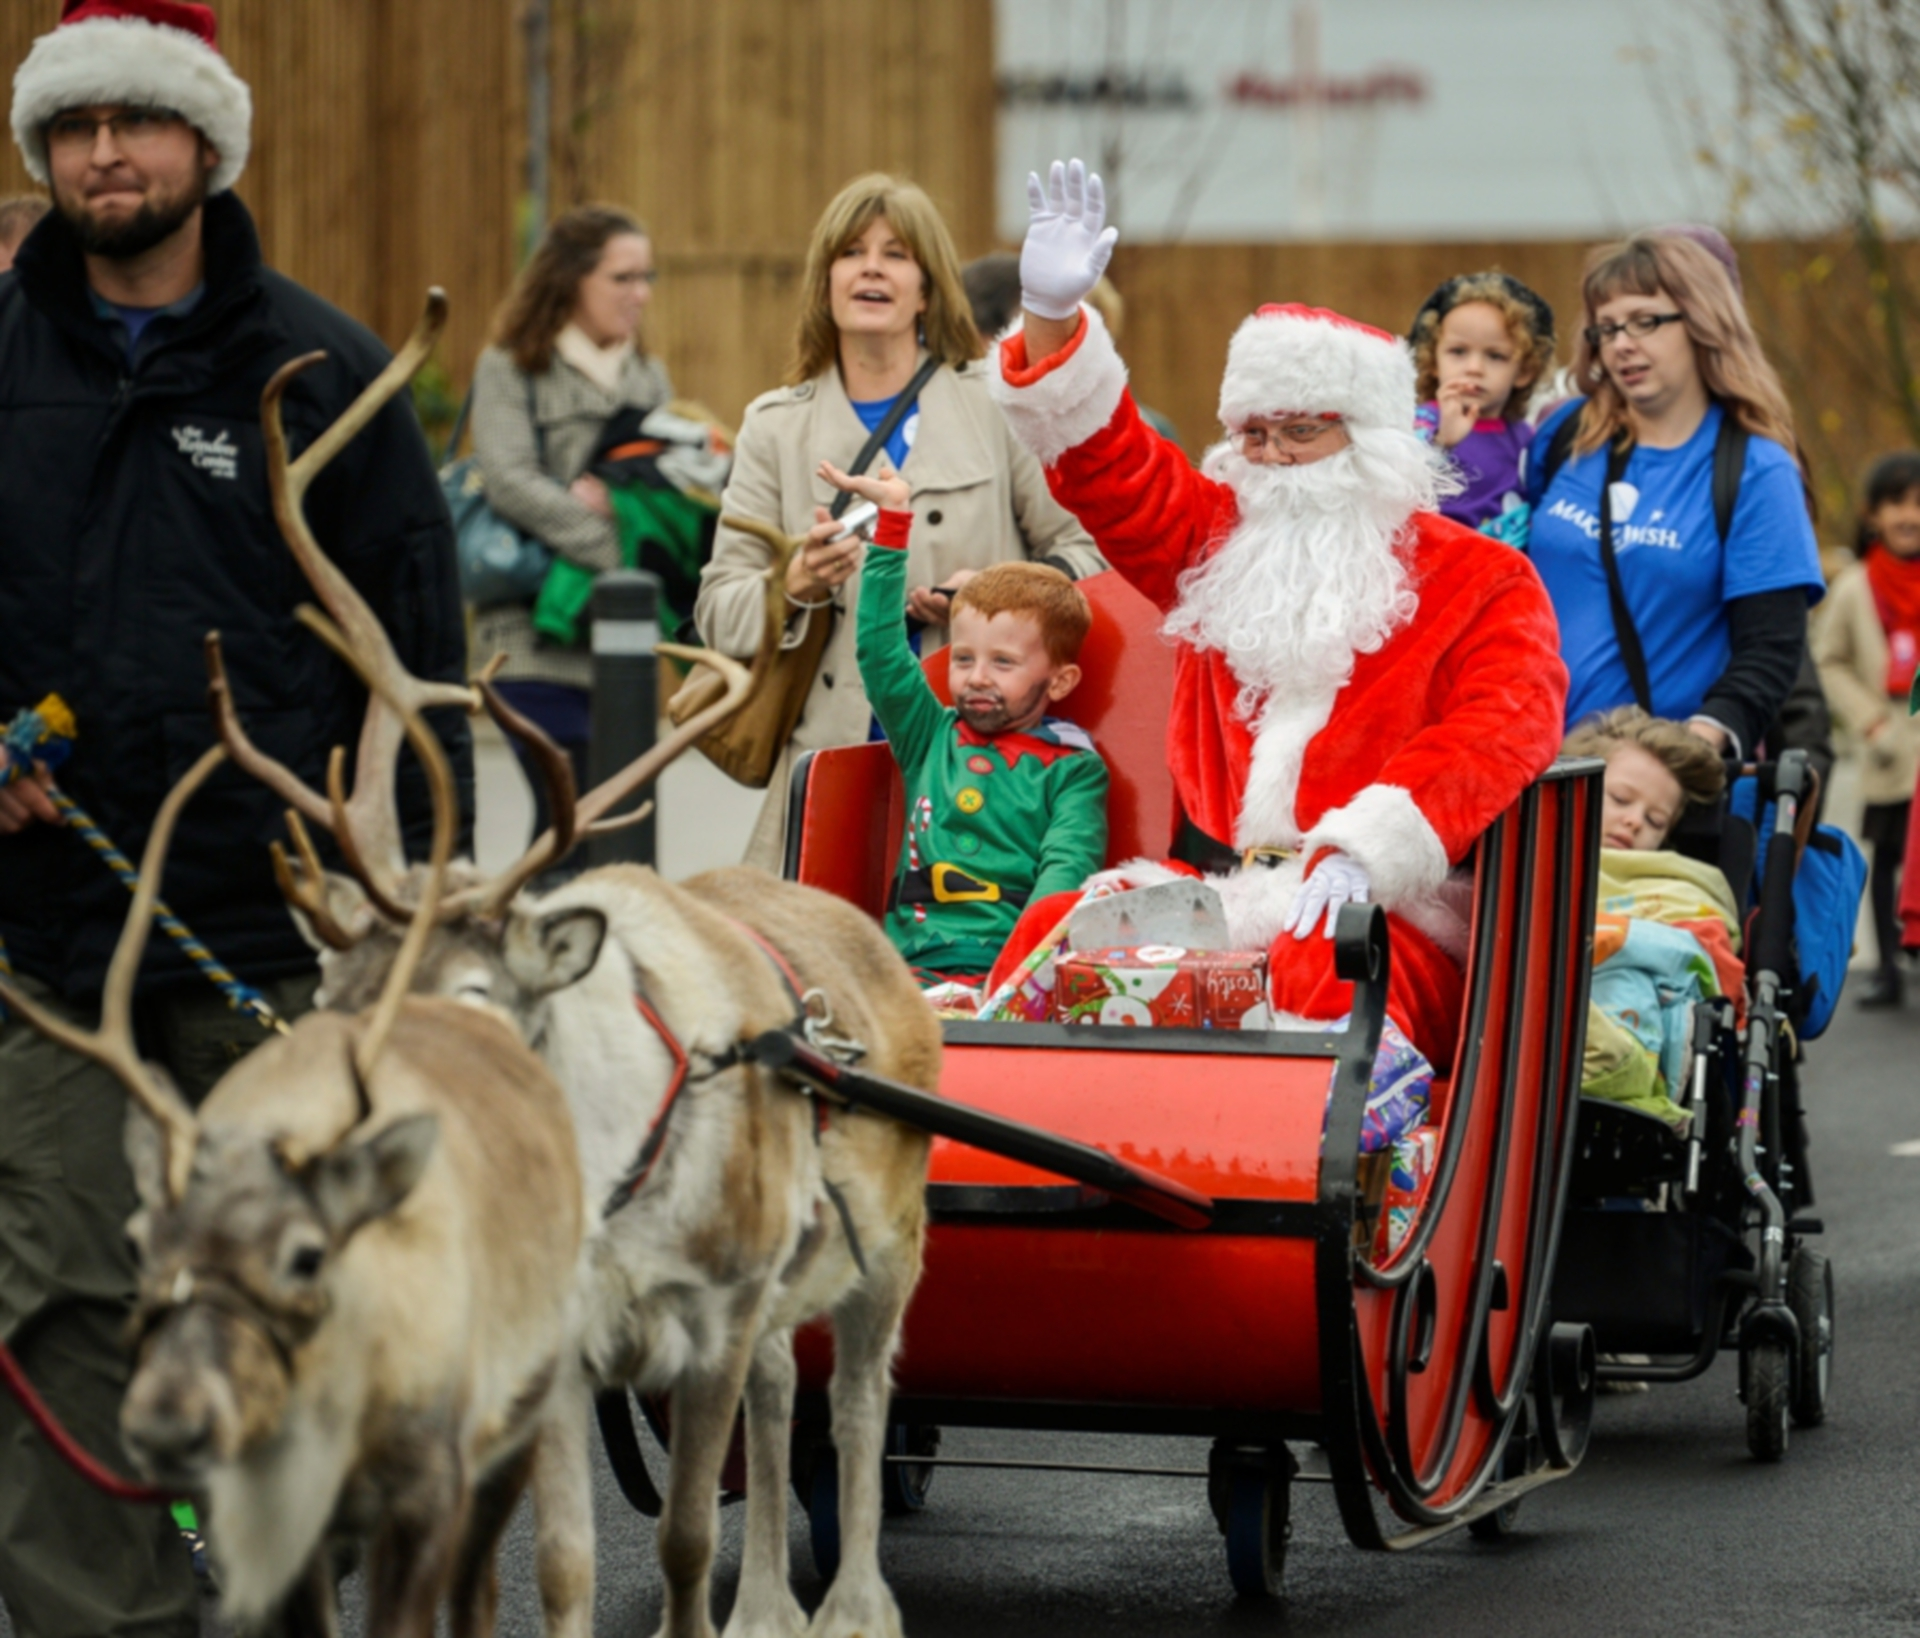 Expect lots of festive fun at Dobbies Perth on November 20.